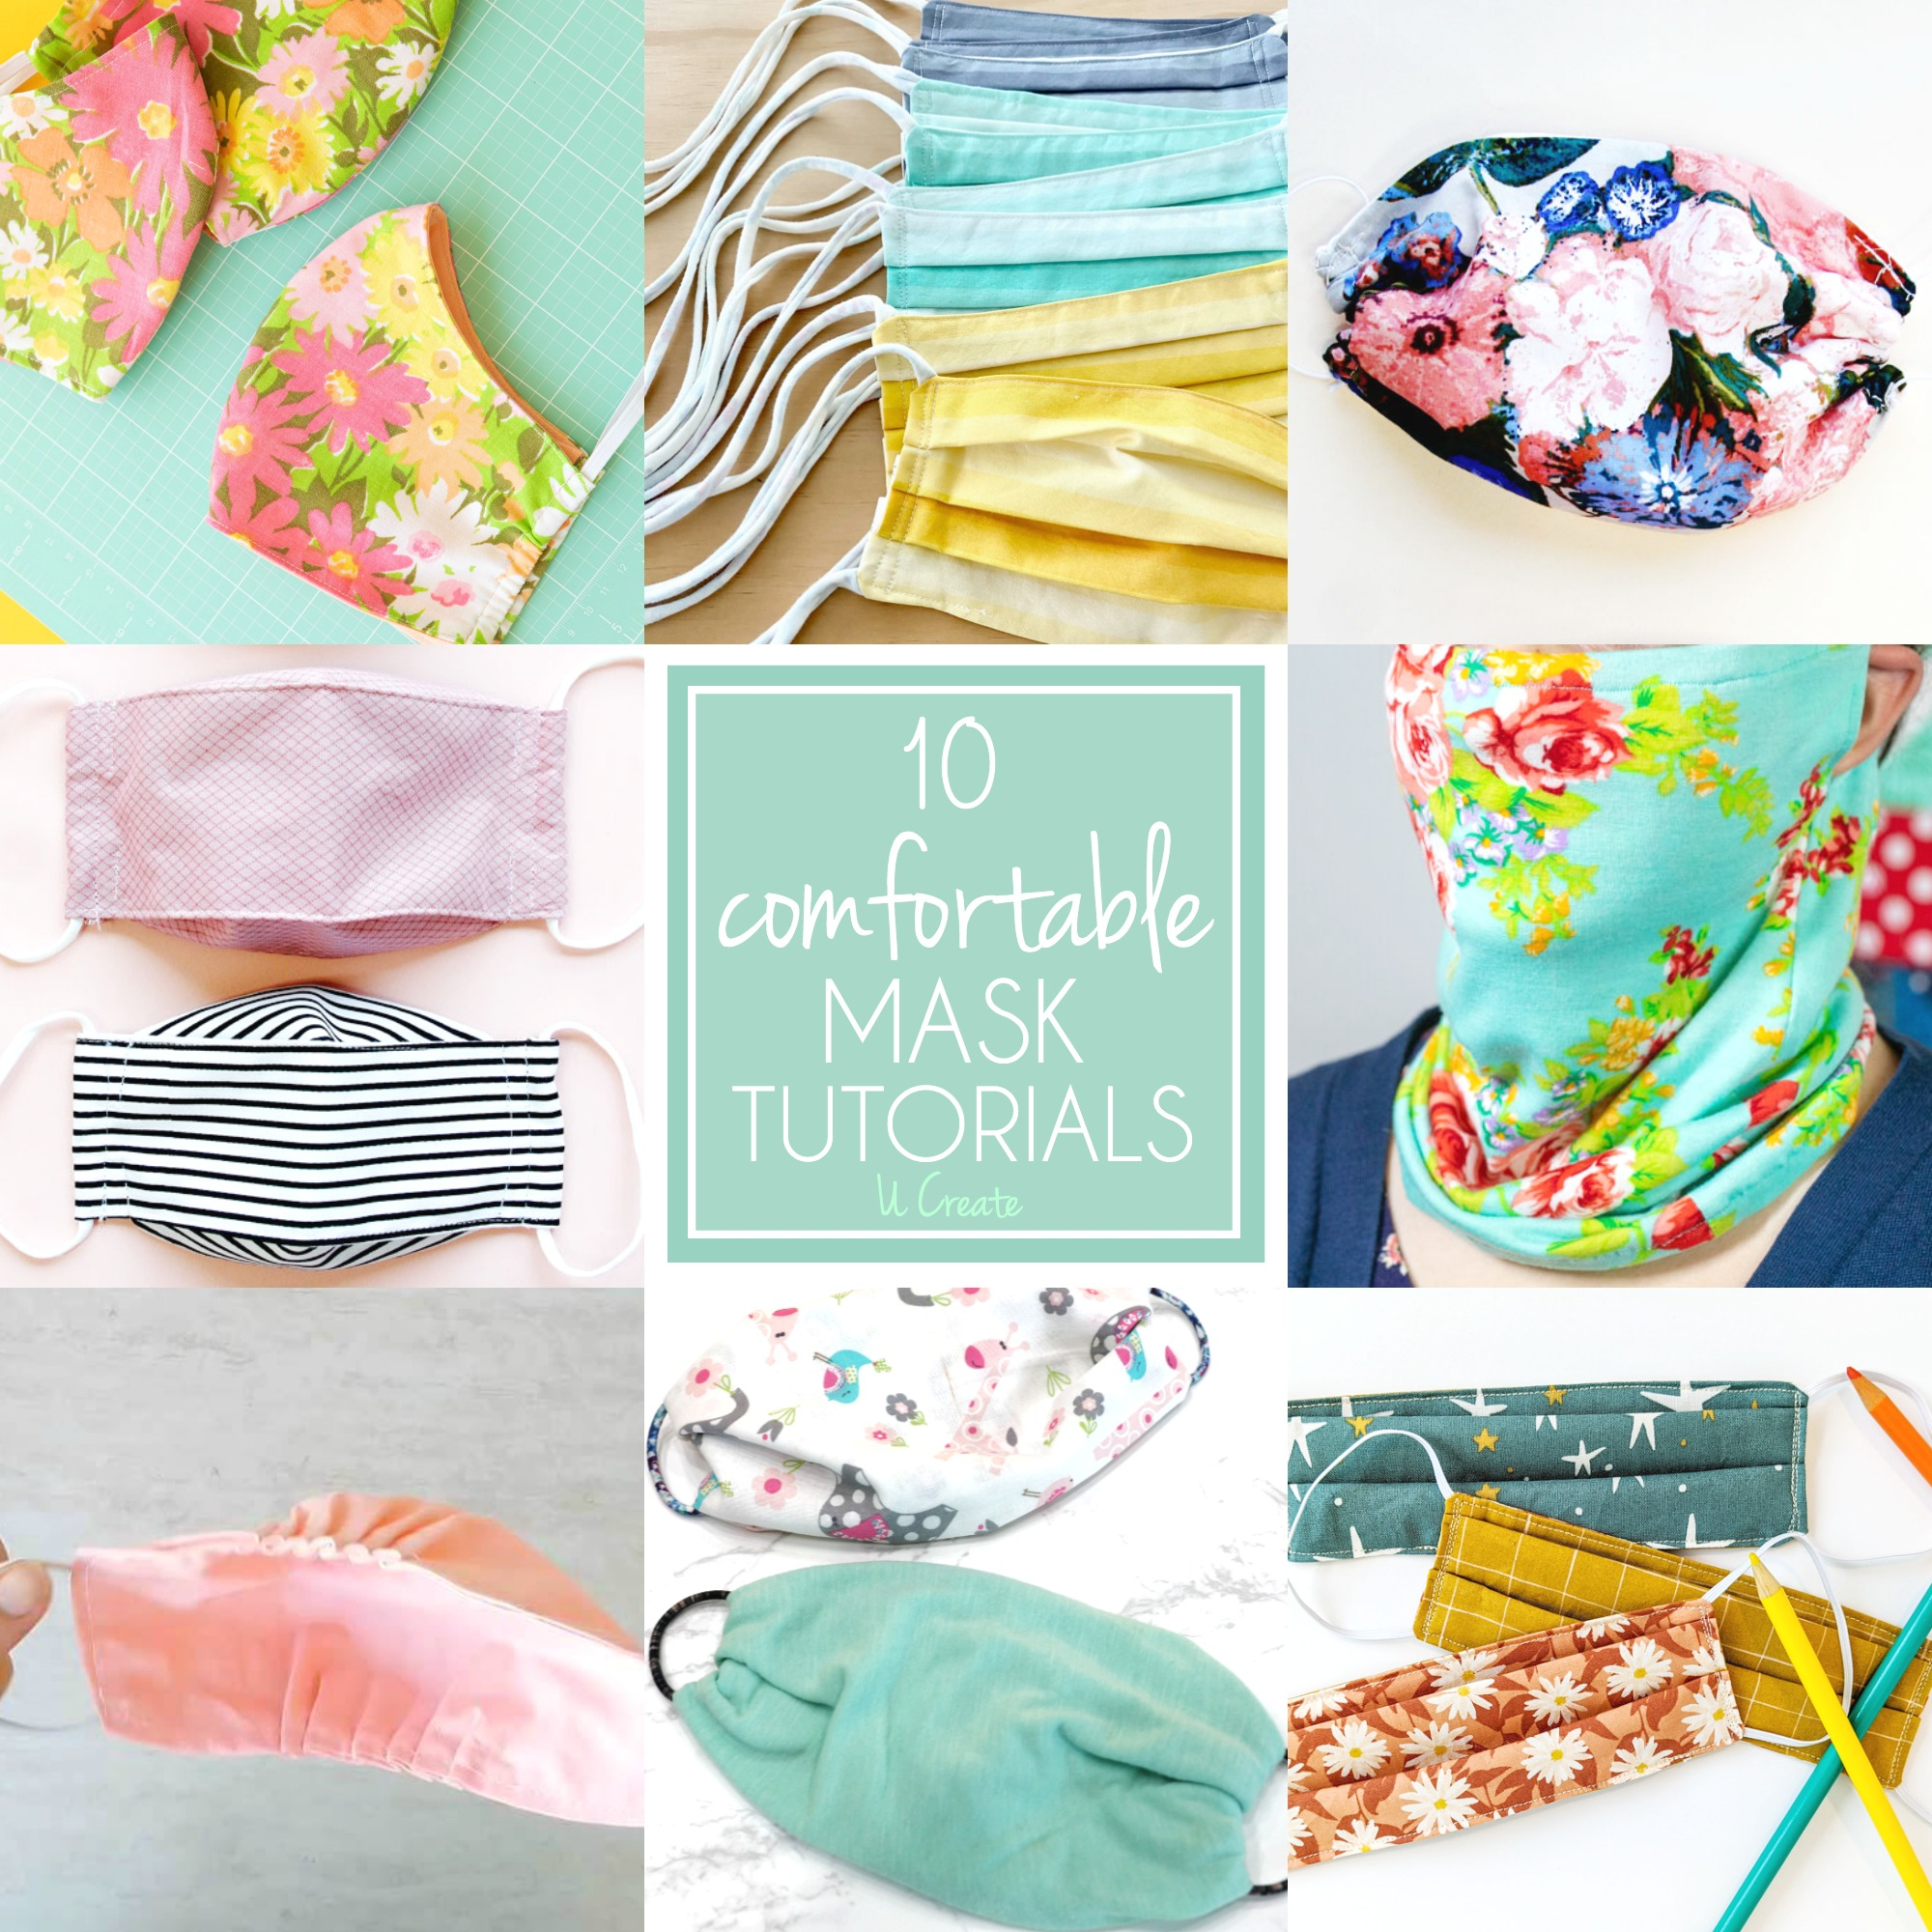 10 Comfortable Mask Tutorials